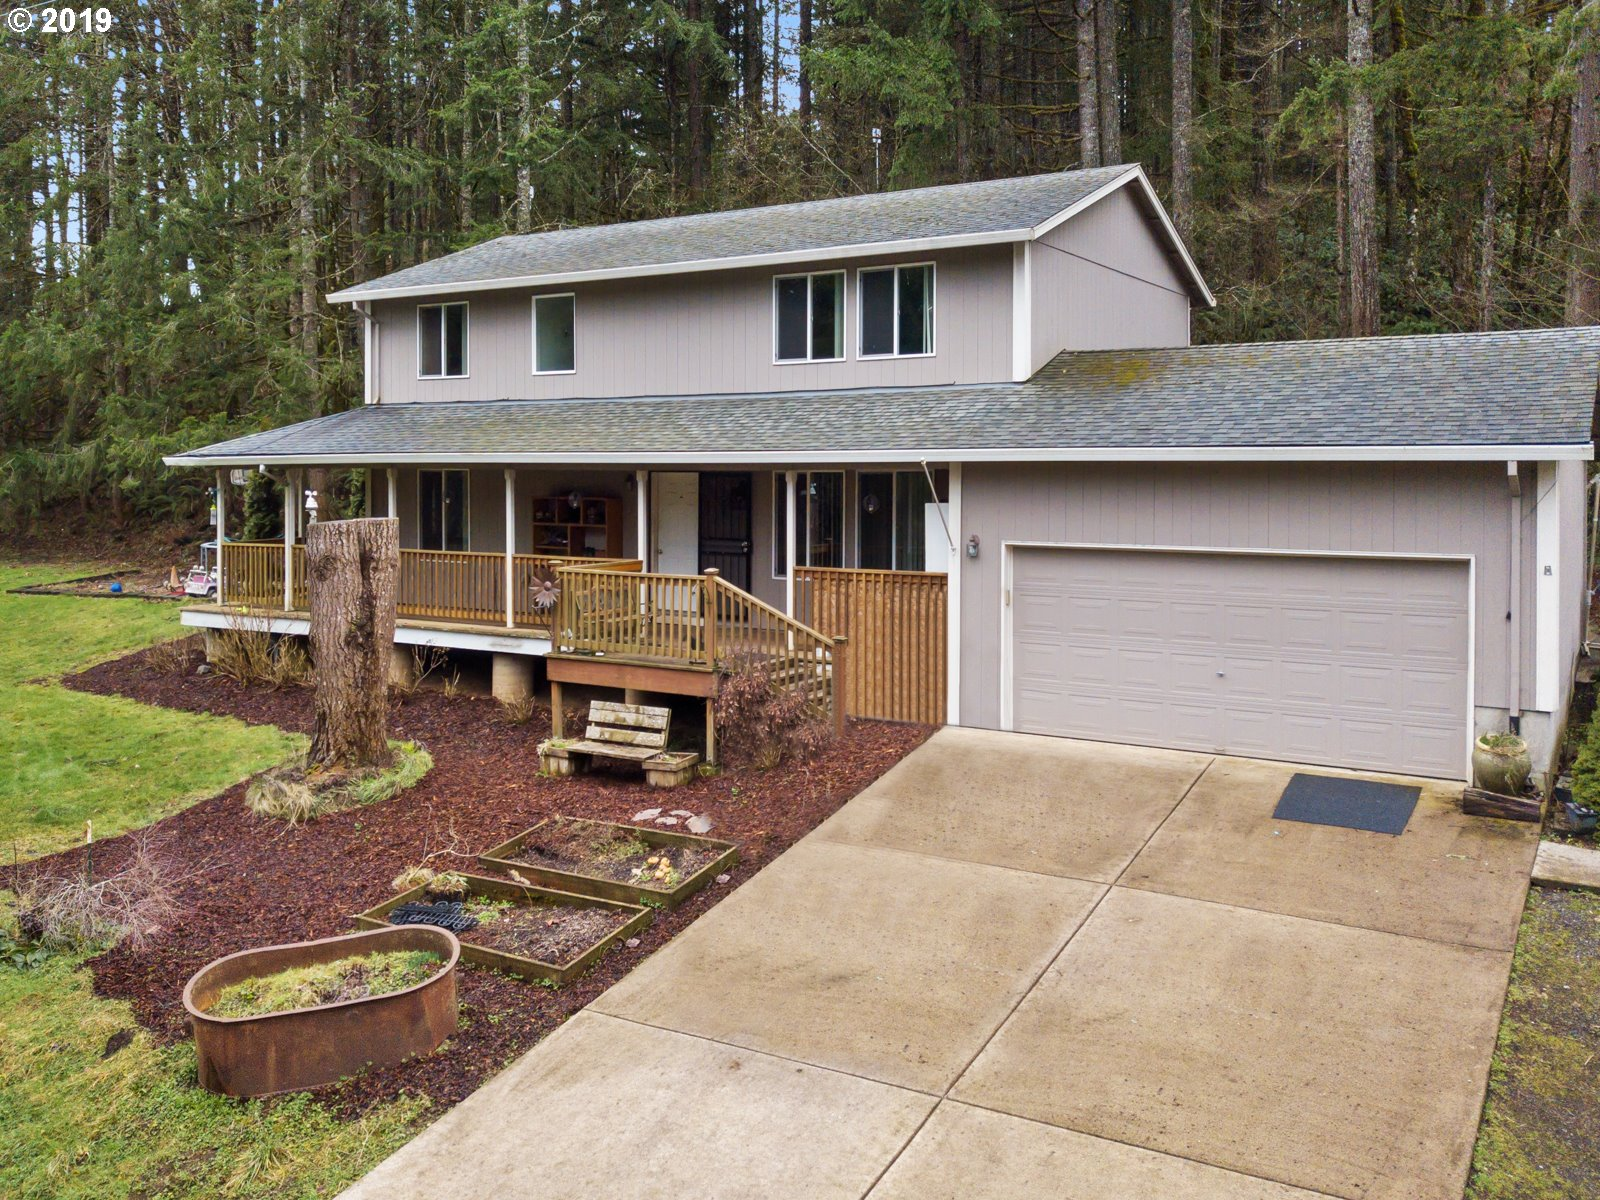 Photo of 37993 S HARDY RD Molalla OR 97038